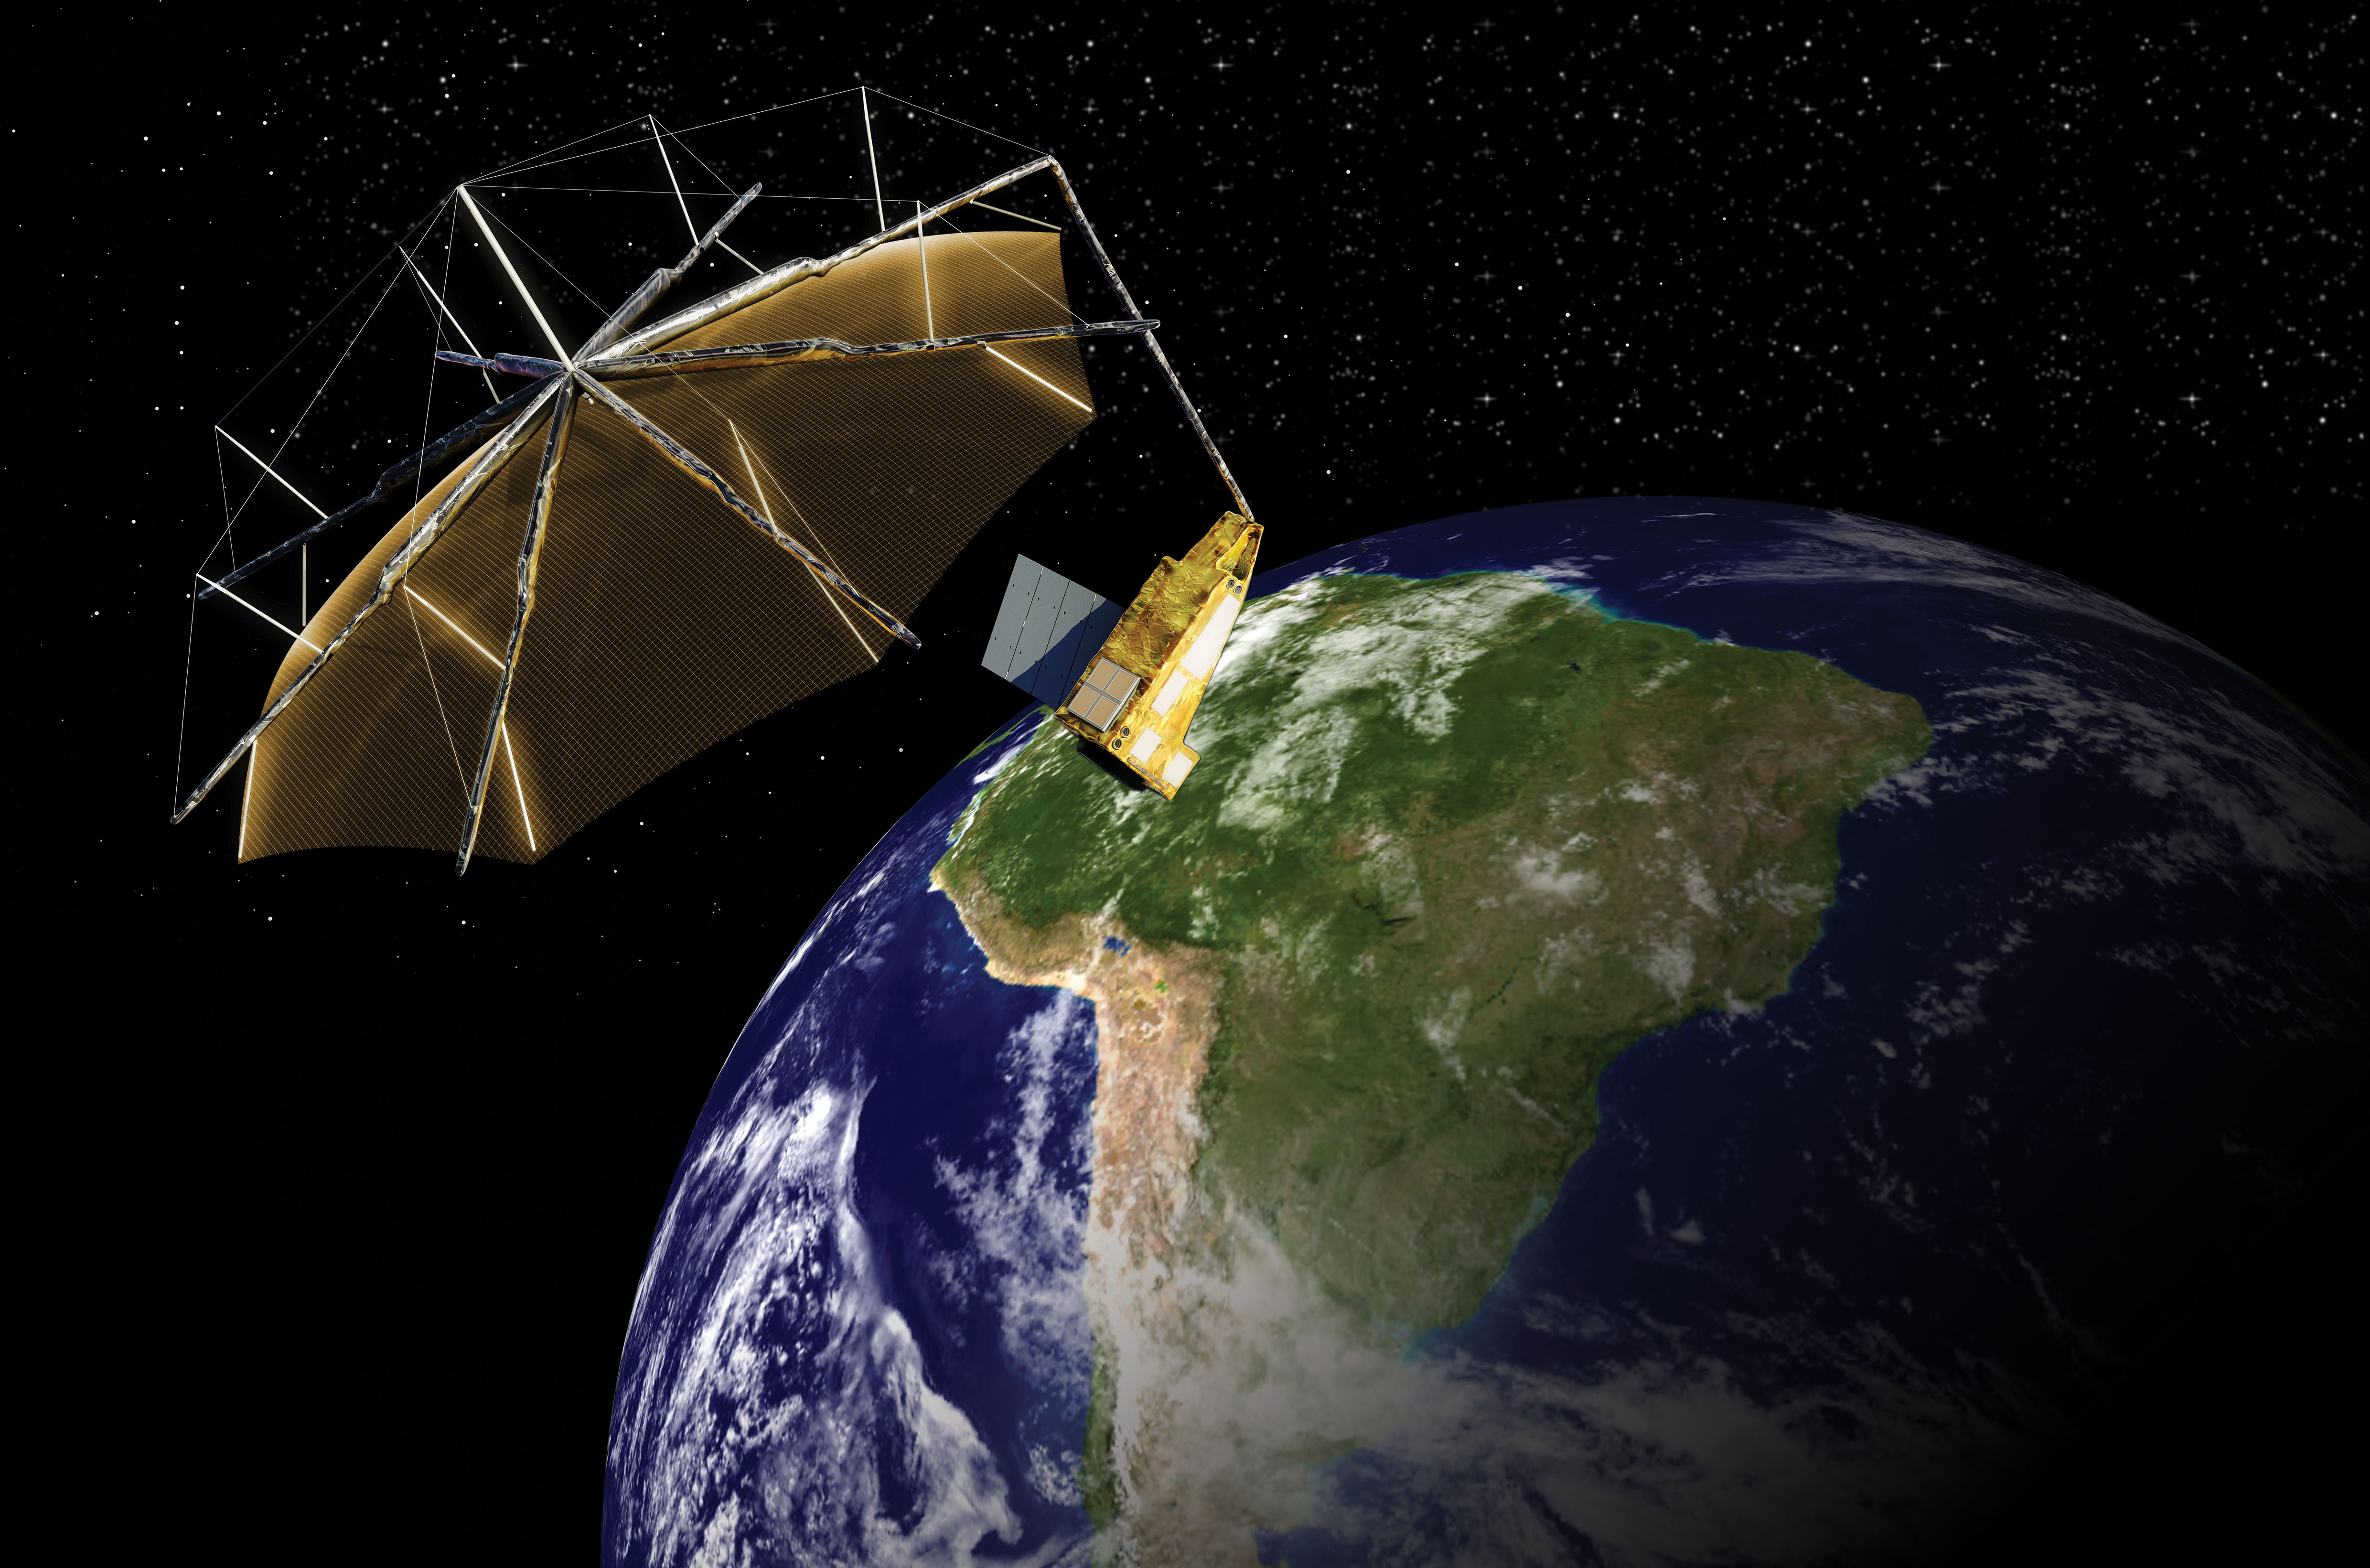 Airbus UK to build Europe's Biomass satellite, featuring first use of P-band radar - SpaceNews.com